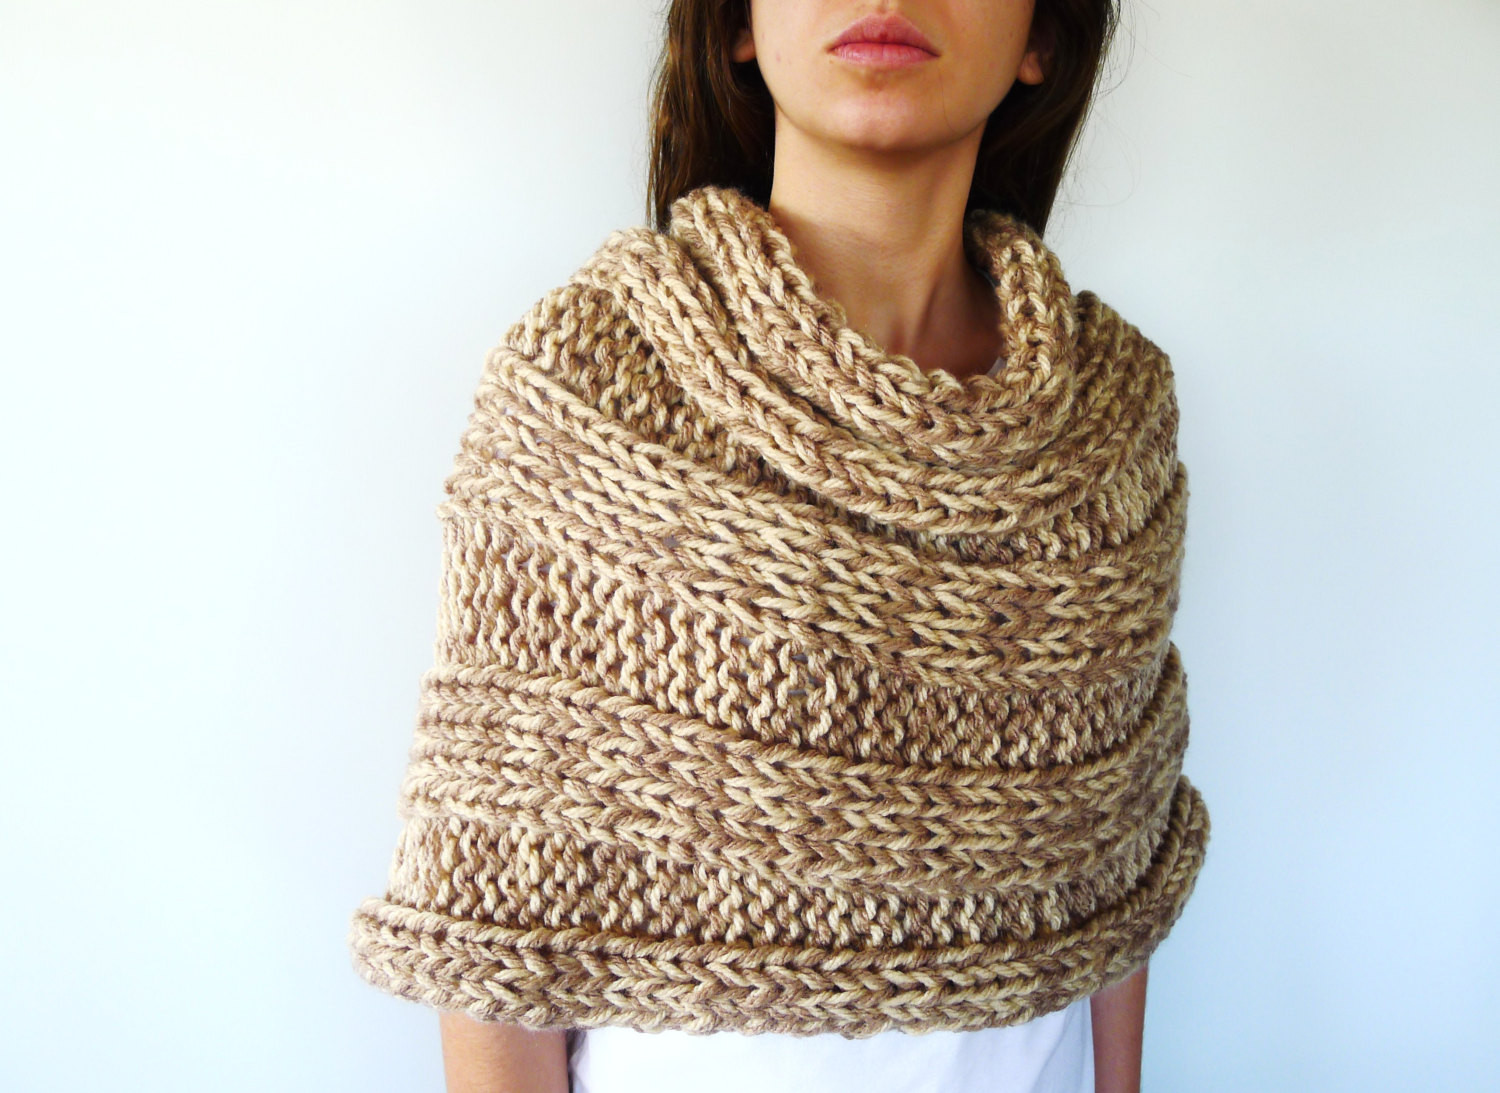 Knitted Poncho Inspirational Women S Wool Poncho Knitted Shoulder Wrap Chunky Knit Of Amazing 49 Photos Knitted Poncho